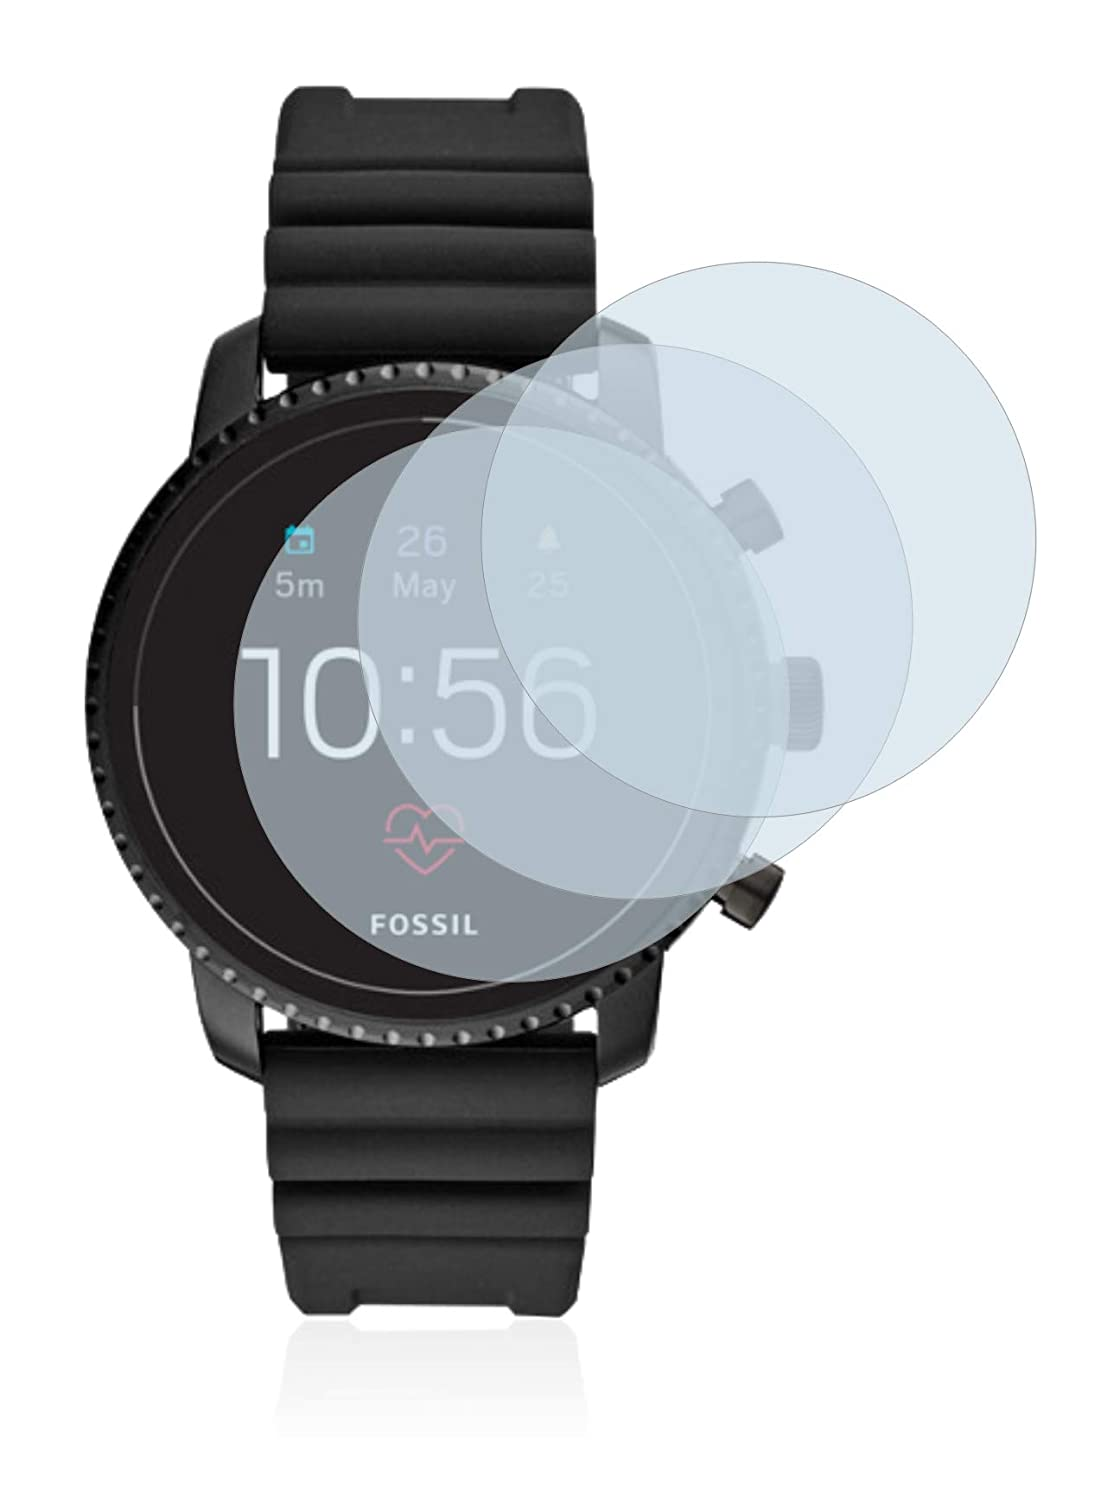 Savvies Verre Trempé Compatible avec Fossil Q Explorist HR (4.Gen) [3 Pièces] Film Protection Ecran 9H: Amazon.fr: High-tech